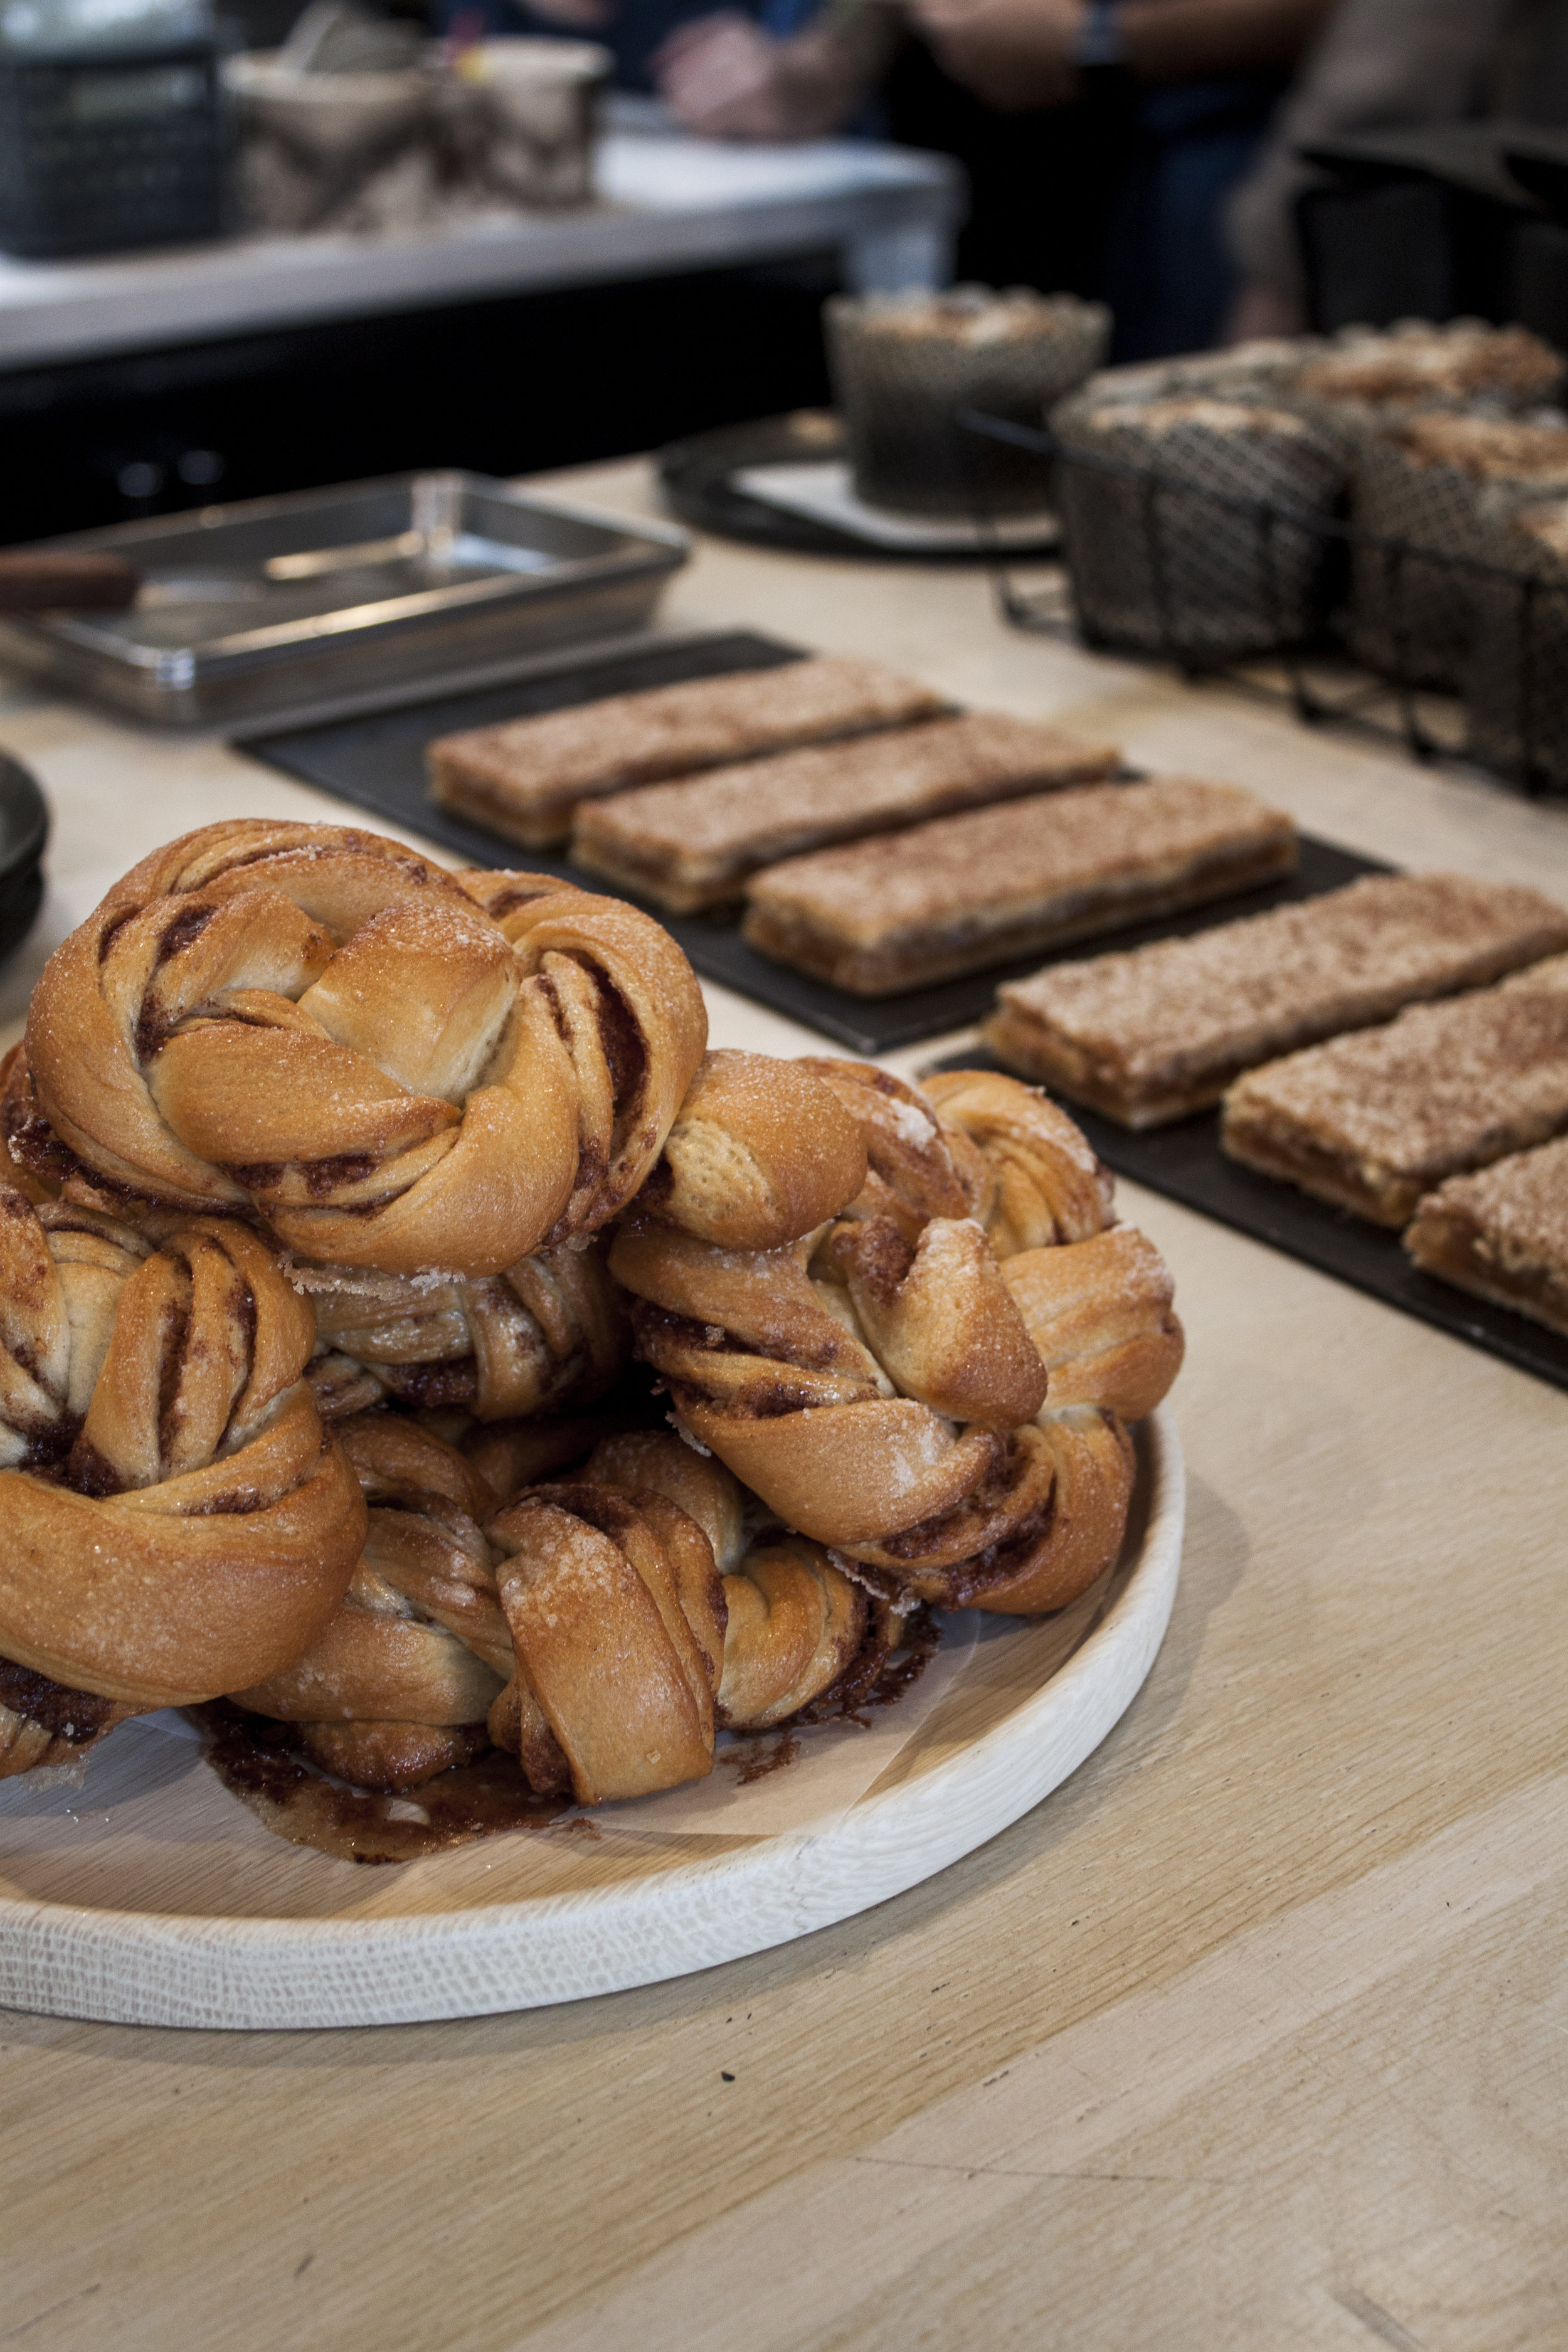 Freshly baked pastries at Destroyer